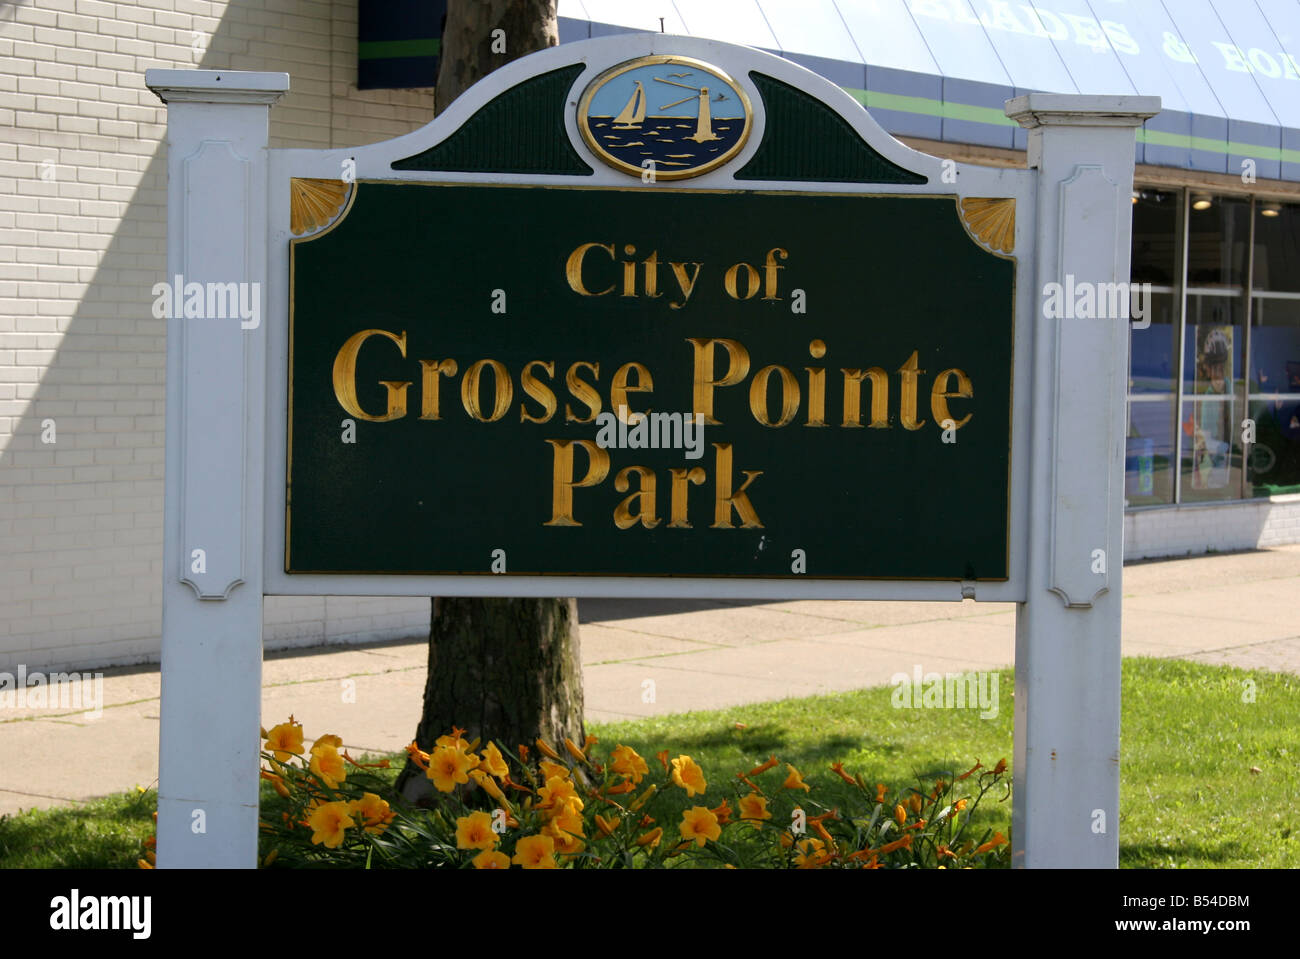 City of Grosse Pointe Park sign - Stock Image